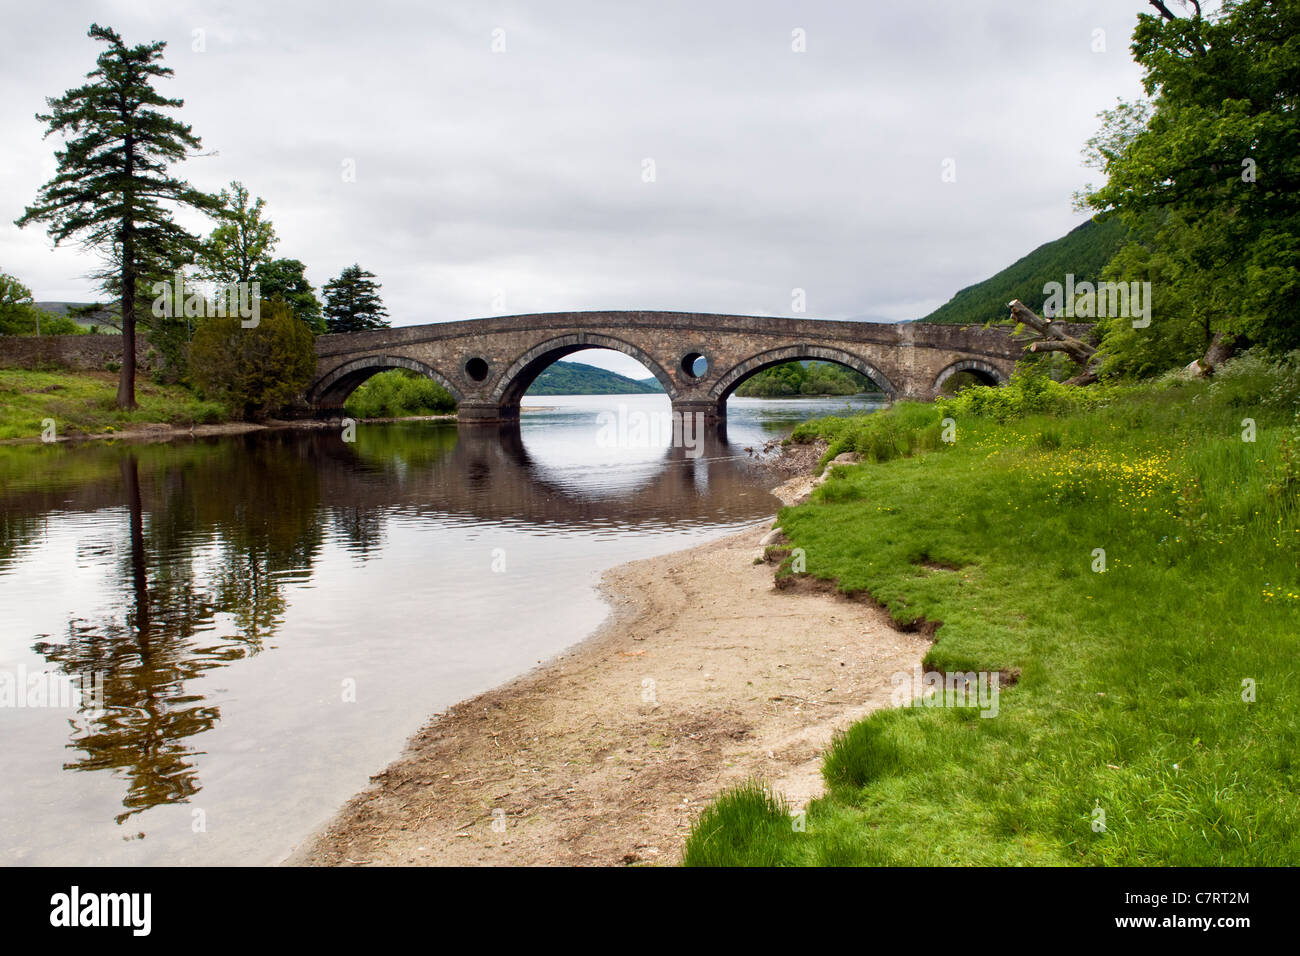 Kenmore bridge at Kenmore over the river Tay looking out over loch Tay and towards Ben Lawers mountain range Stock Photo